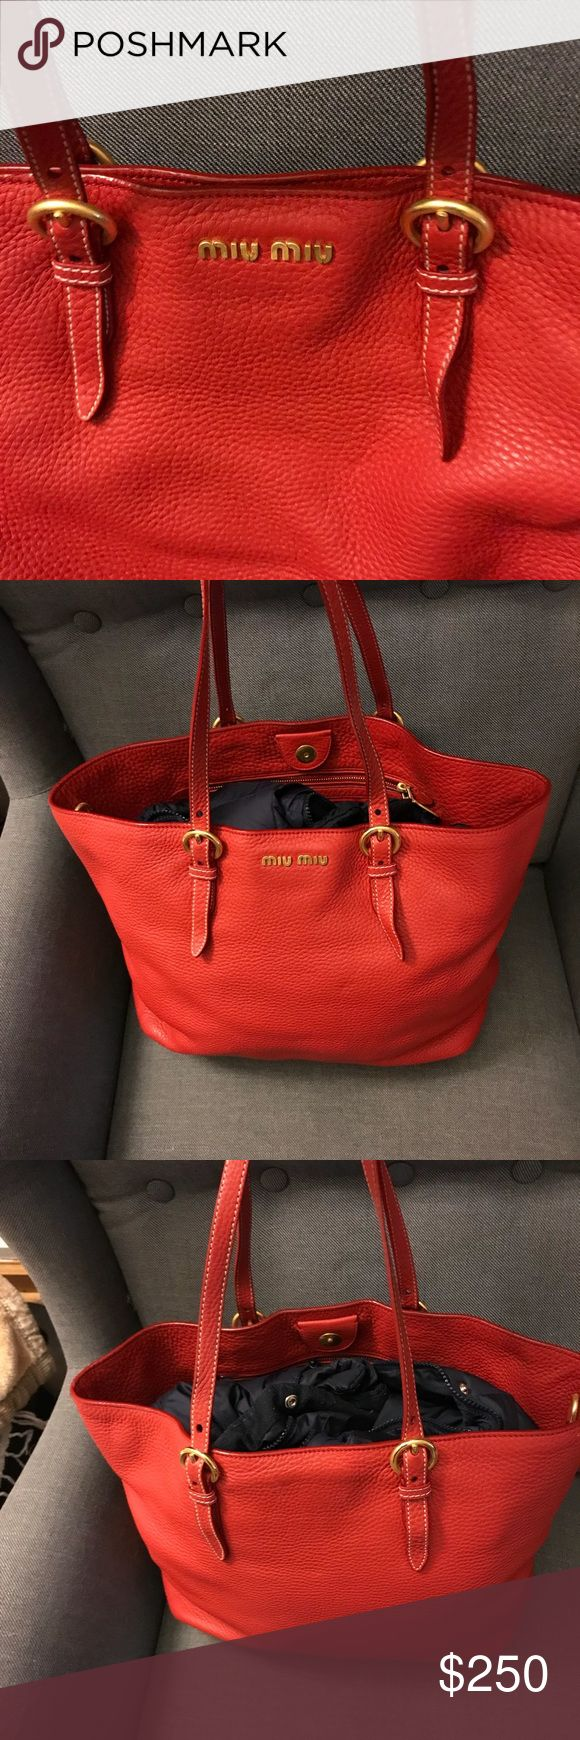 Miu Miu Handbag Tote The bag was purchased at a Prada Outlet Store in 2016. It has 3 pockets inside; one is smaller than the other two. The two larger pockets have zippers. The bag is a nice red when seen in person. It has some staining inside of the bag and pockets. I have pictures to show. Please ask more questions if need be. It was the end of the season when I bought it. Thanks! FYI-there is a coat inside to make it seem More full. The coat is sold separately. Thanks! Miu Miu Bags Totes